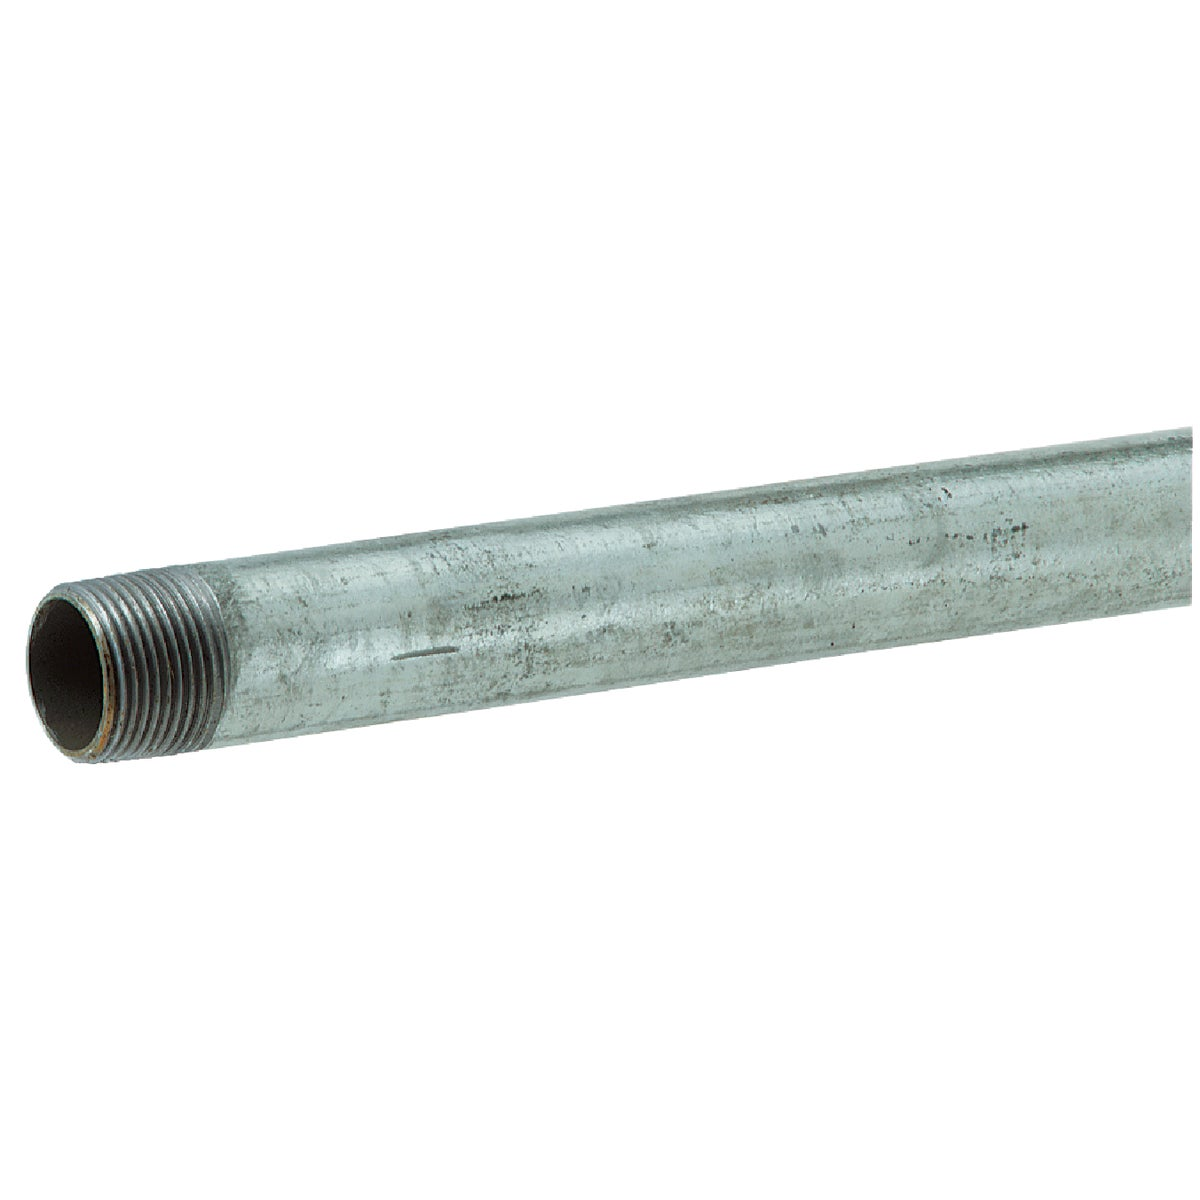 1X18 GALV RDI-CT PIPE